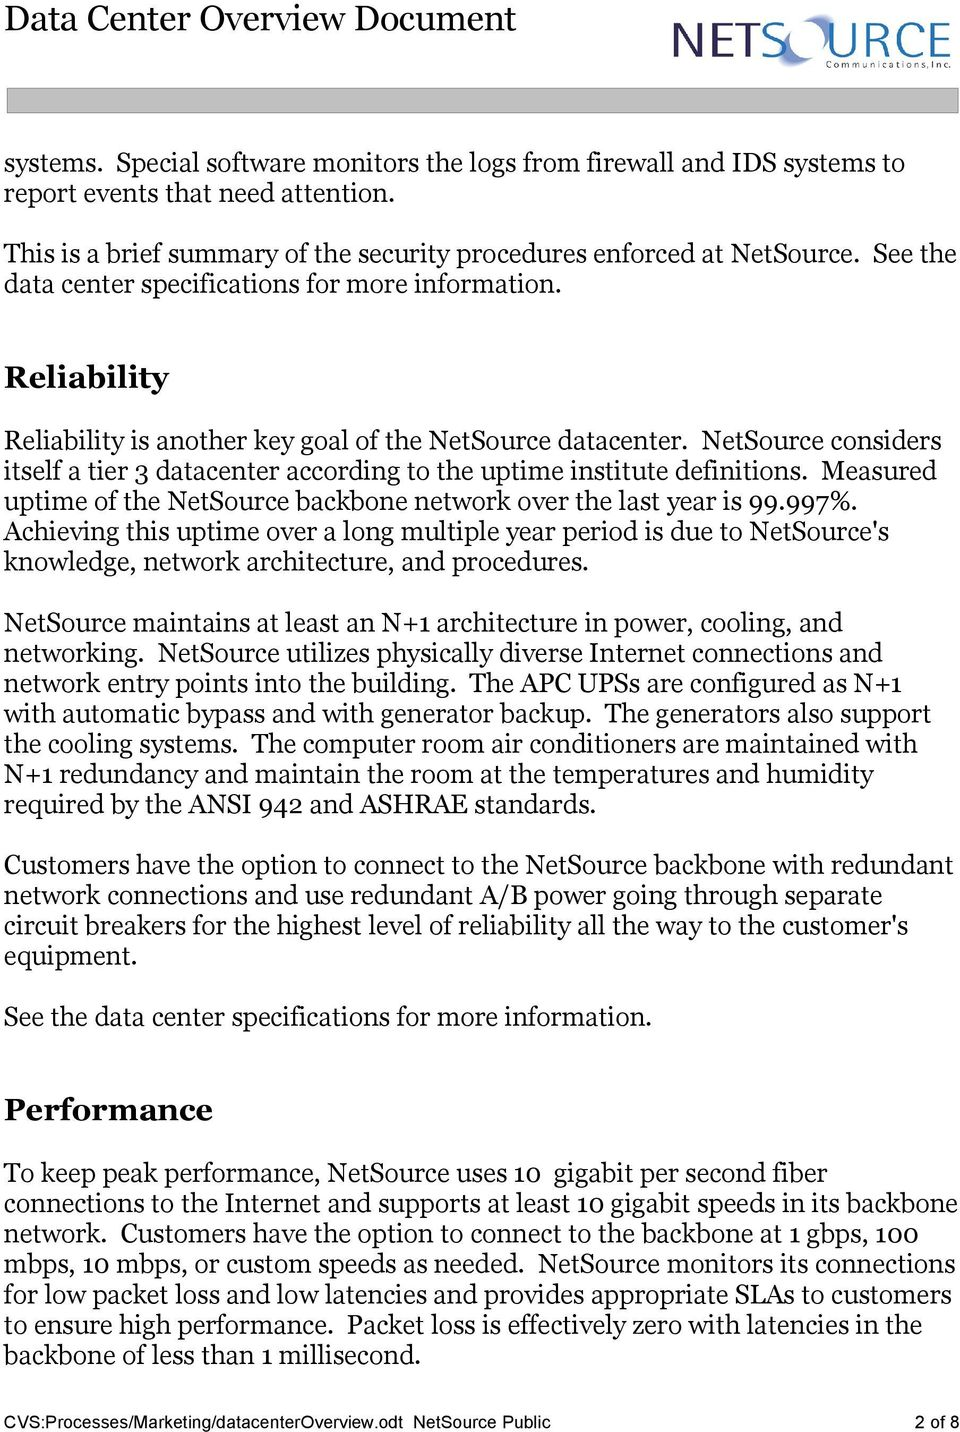 NetSource considers itself a tier 3 datacenter according to the uptime institute definitions. Measured uptime of the NetSource backbone network over the last year is 99.997%.